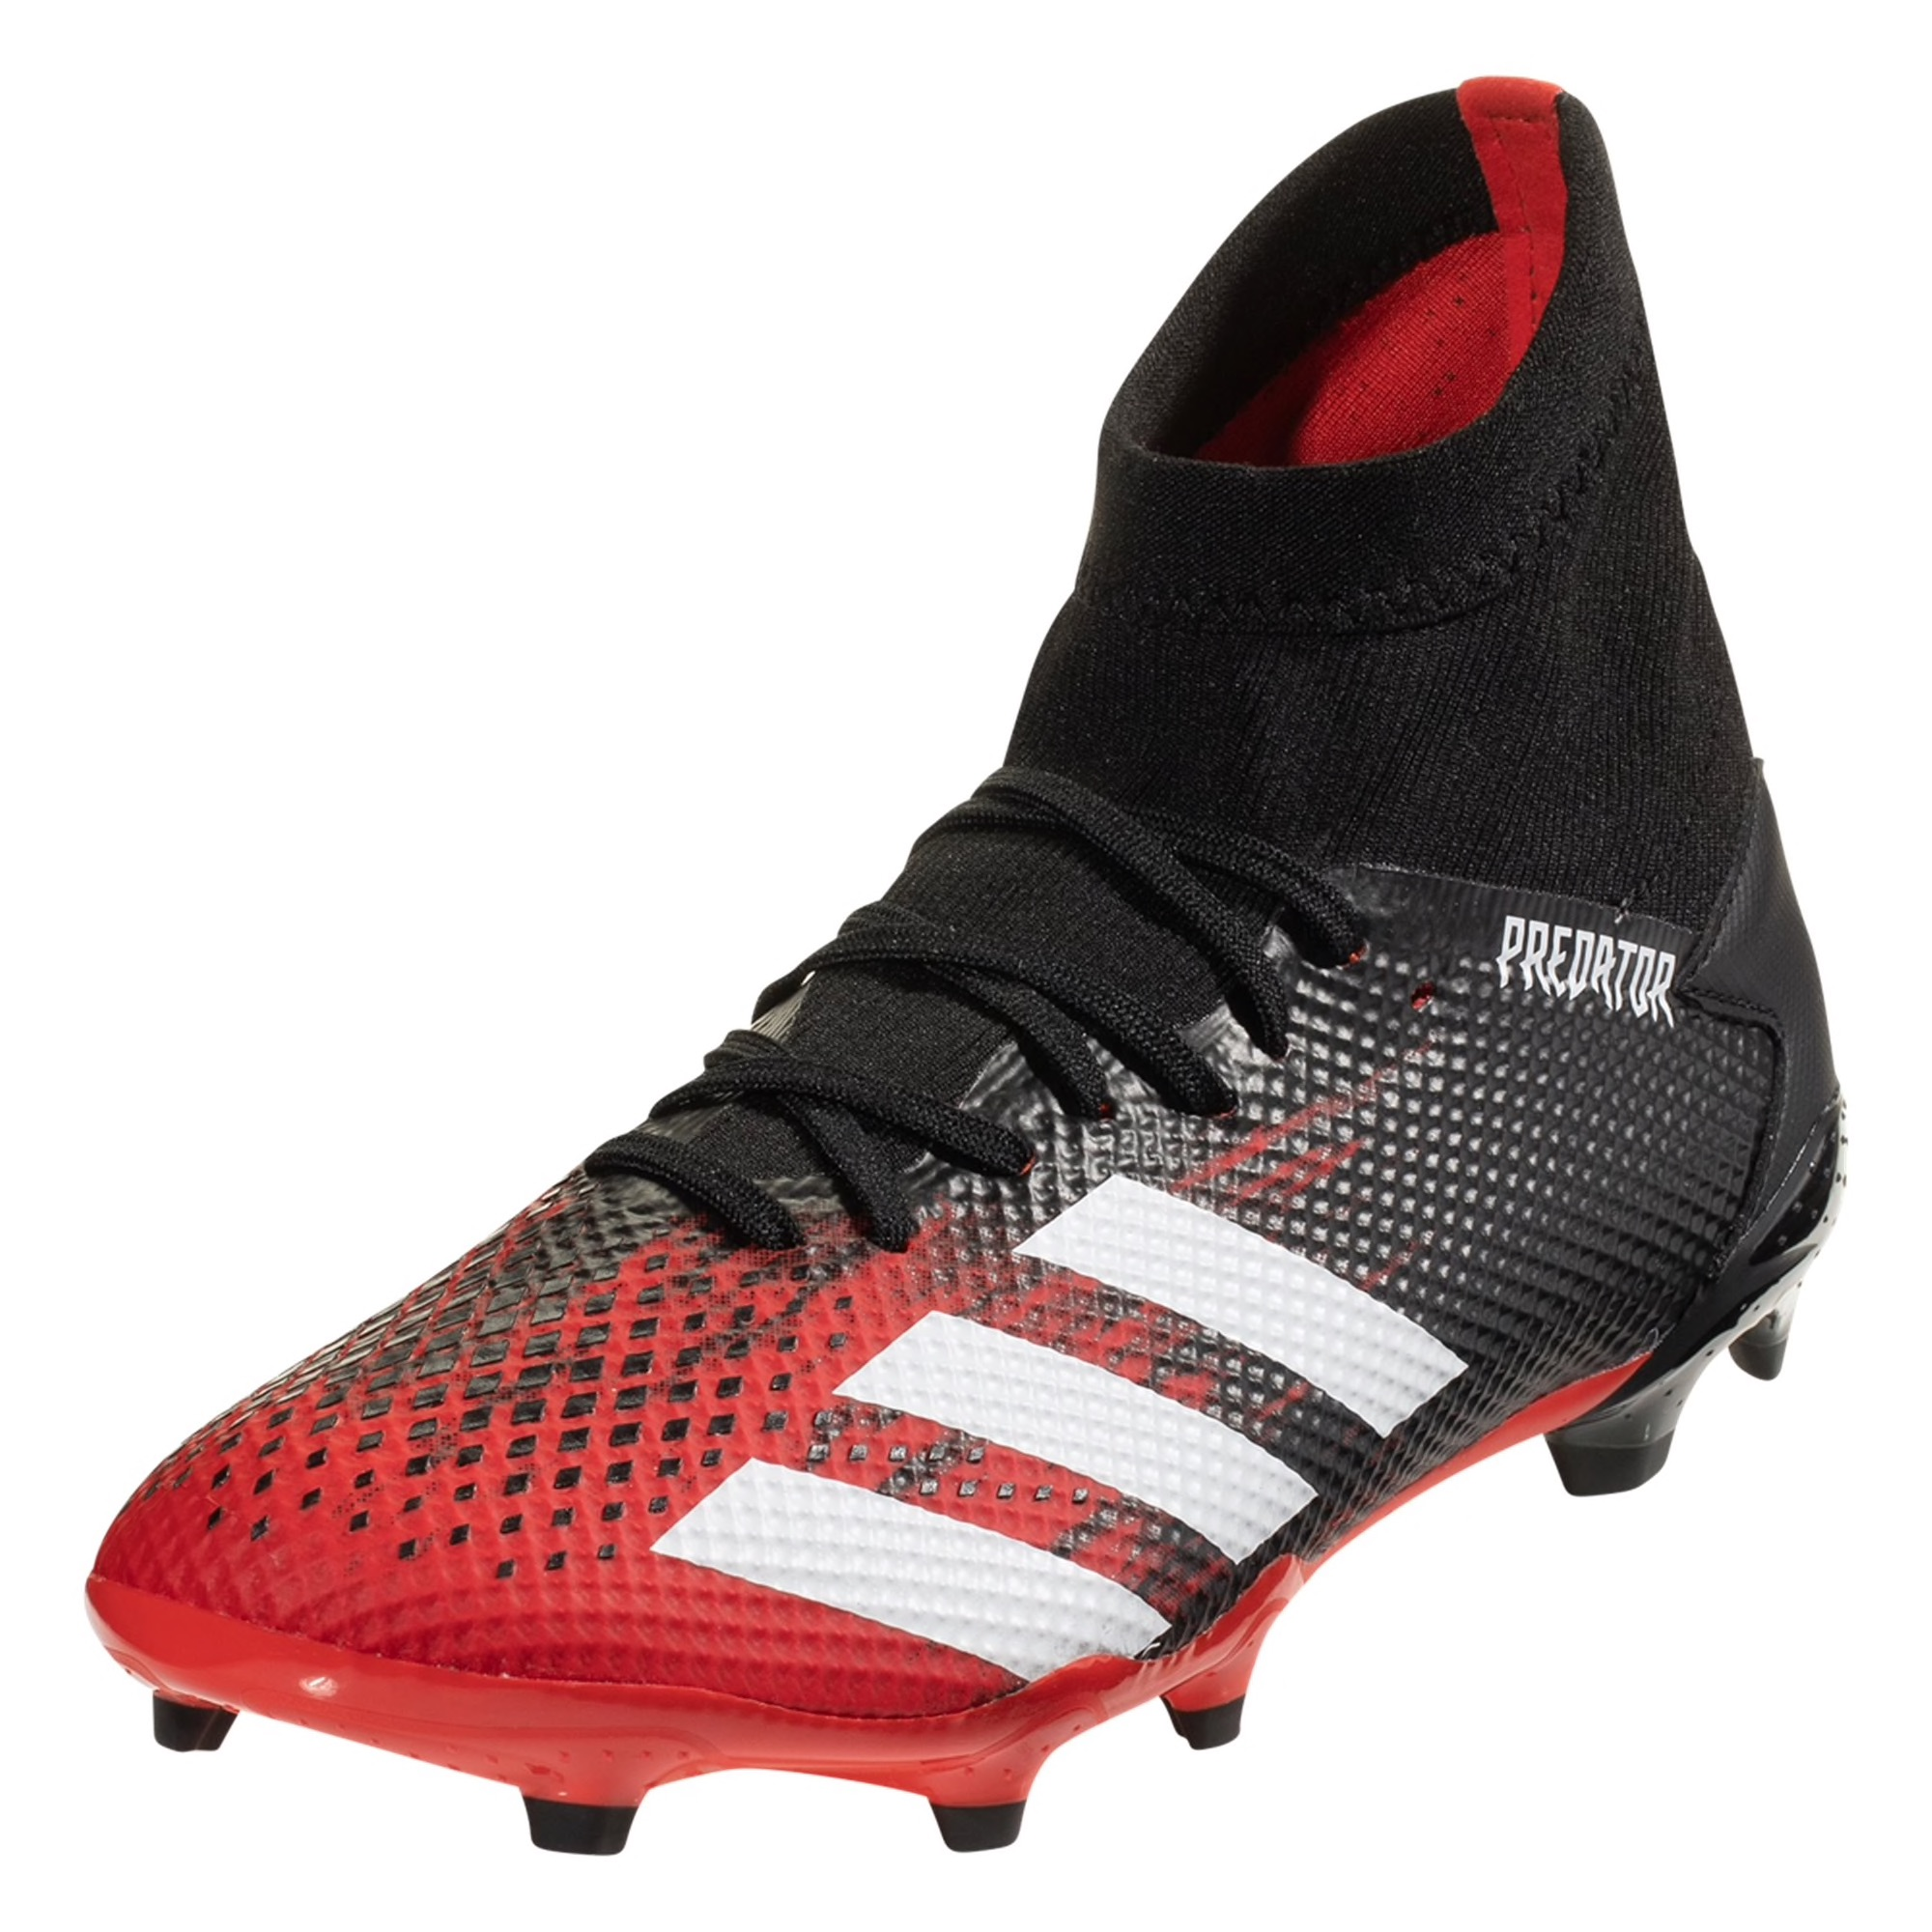 adidas Predator 20.3 FG Soccer Cleat - Red / White / Black